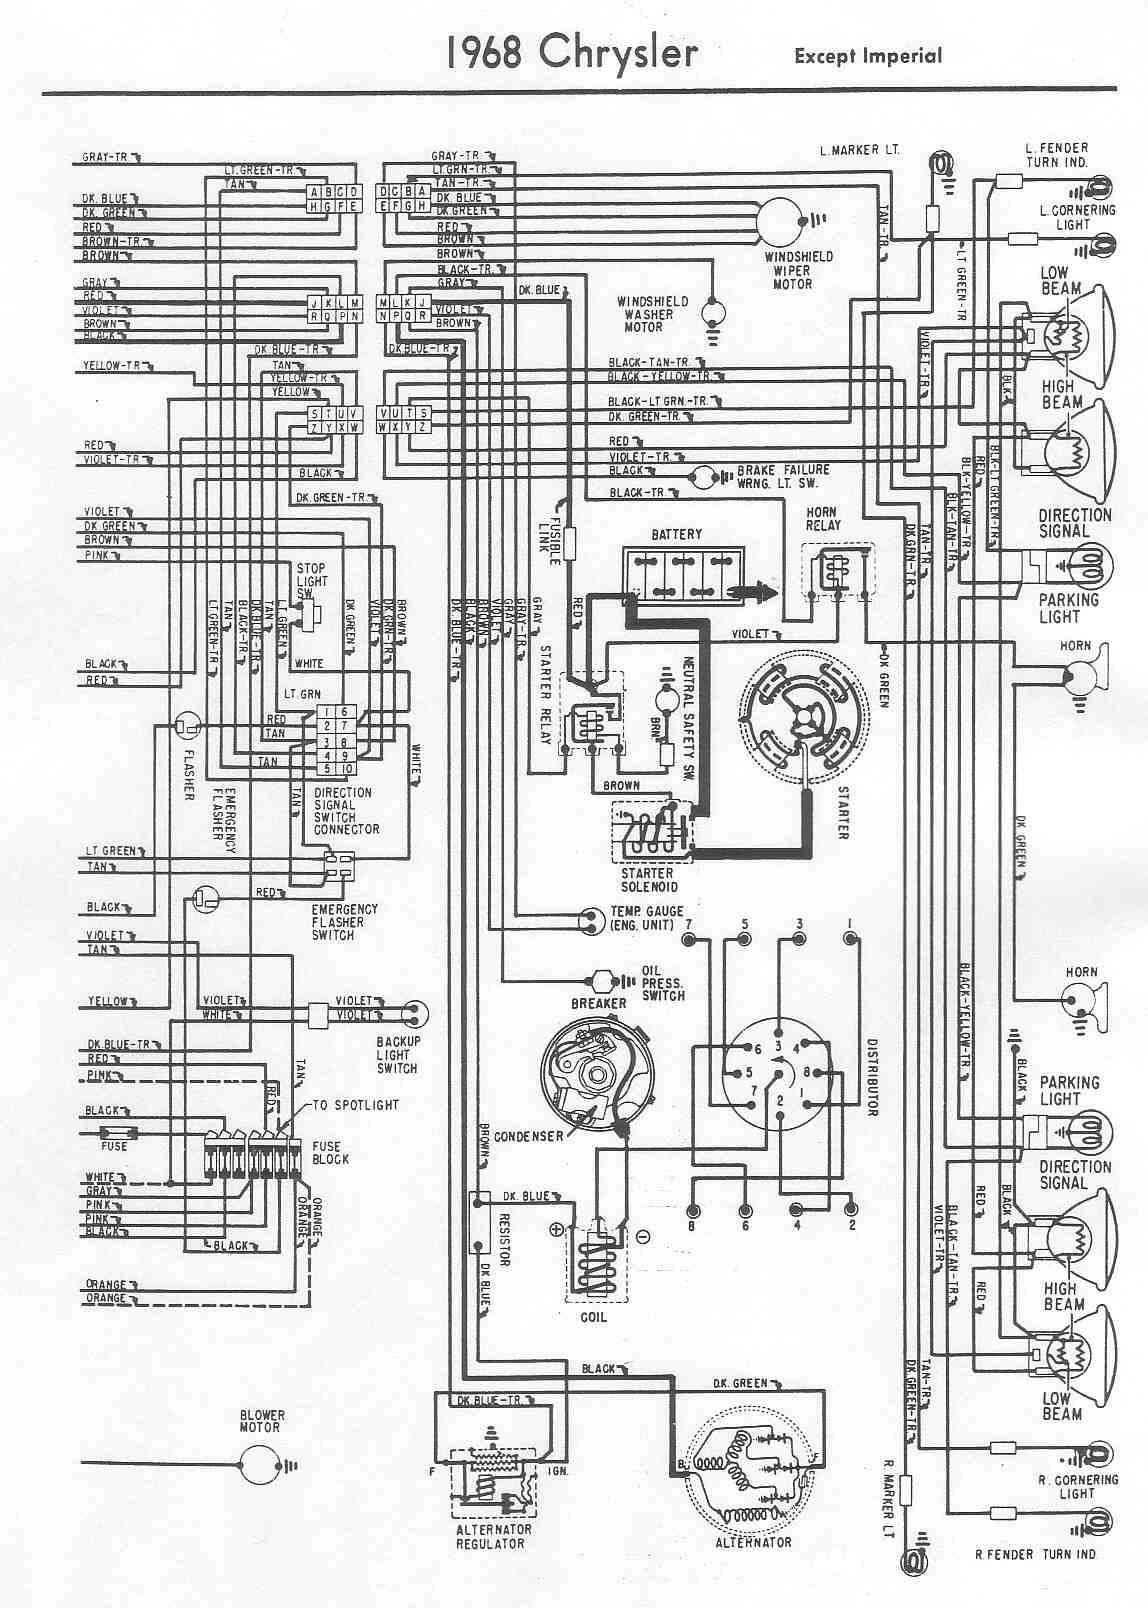 1969 Road Runner Wiring Diagram Schematic Dodge Coronet Switch Dart Ignition Schematics Rh Seniorlivinguniversity Co 1968 Plymouth Valiant